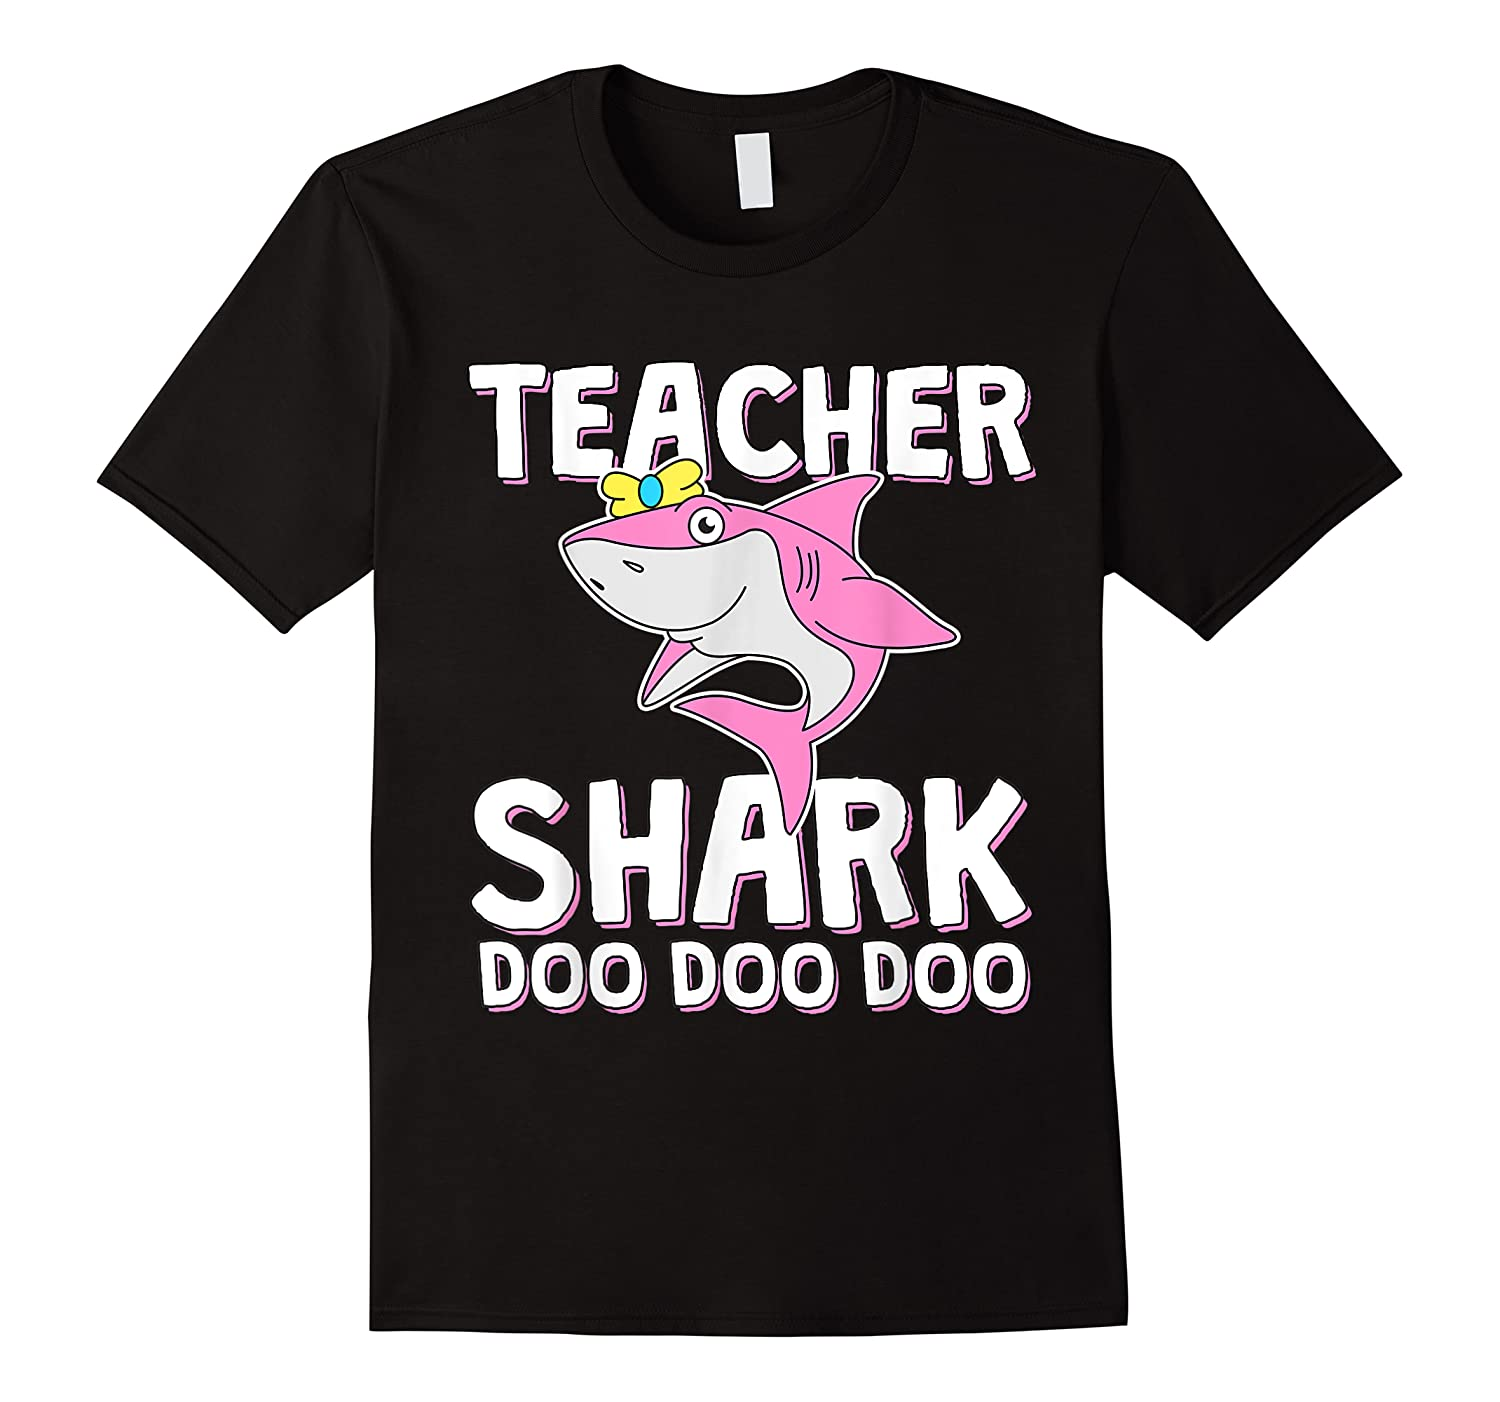 Teacher Shark Doo Doo Doo Shirts